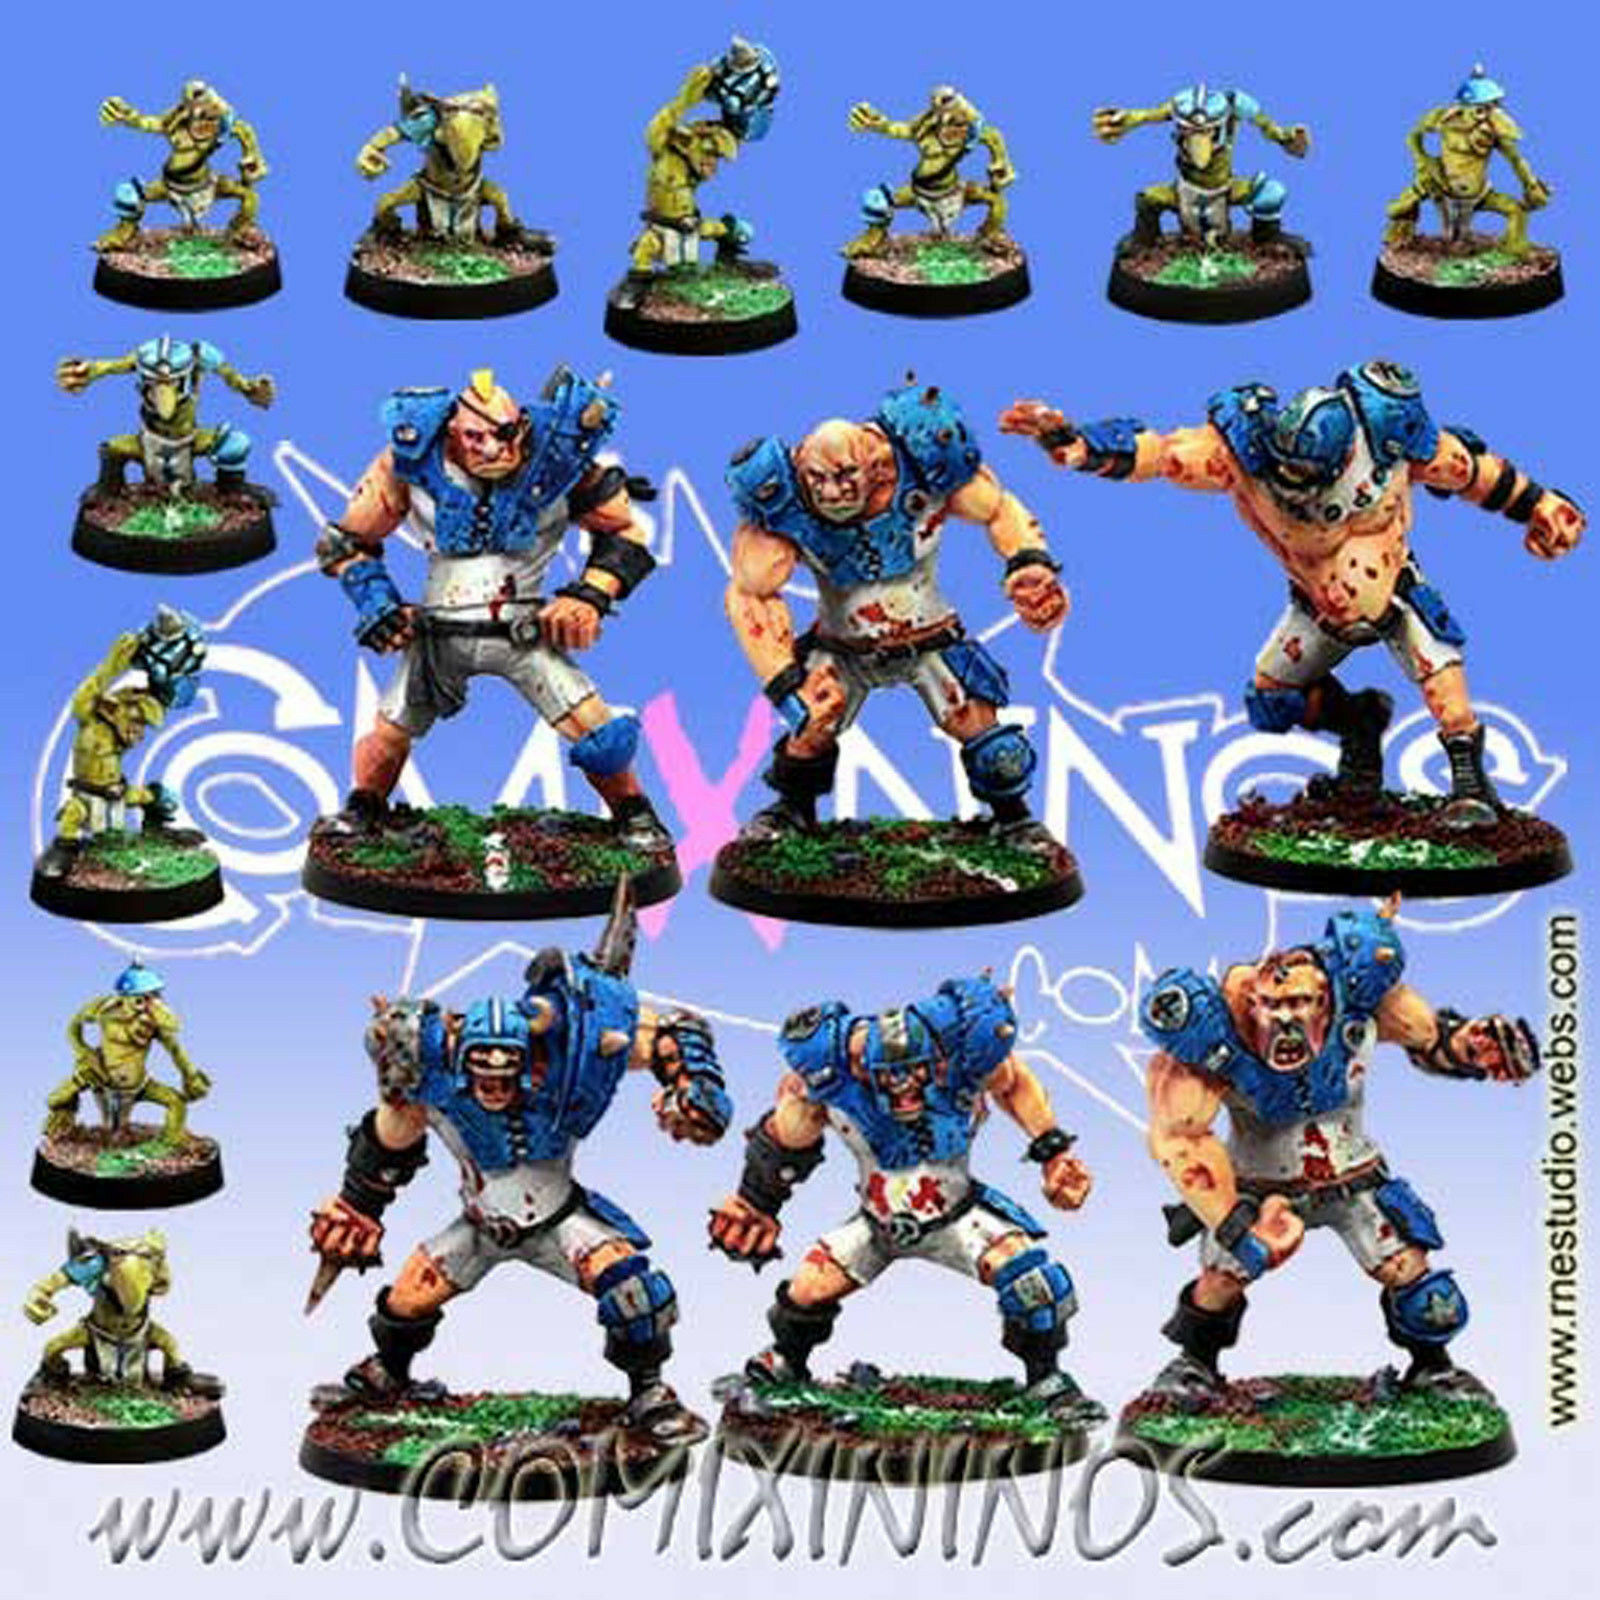 Fantasy Football - OGRE TEAM 16 Players for Blood Bowl - Meiko Minitatures